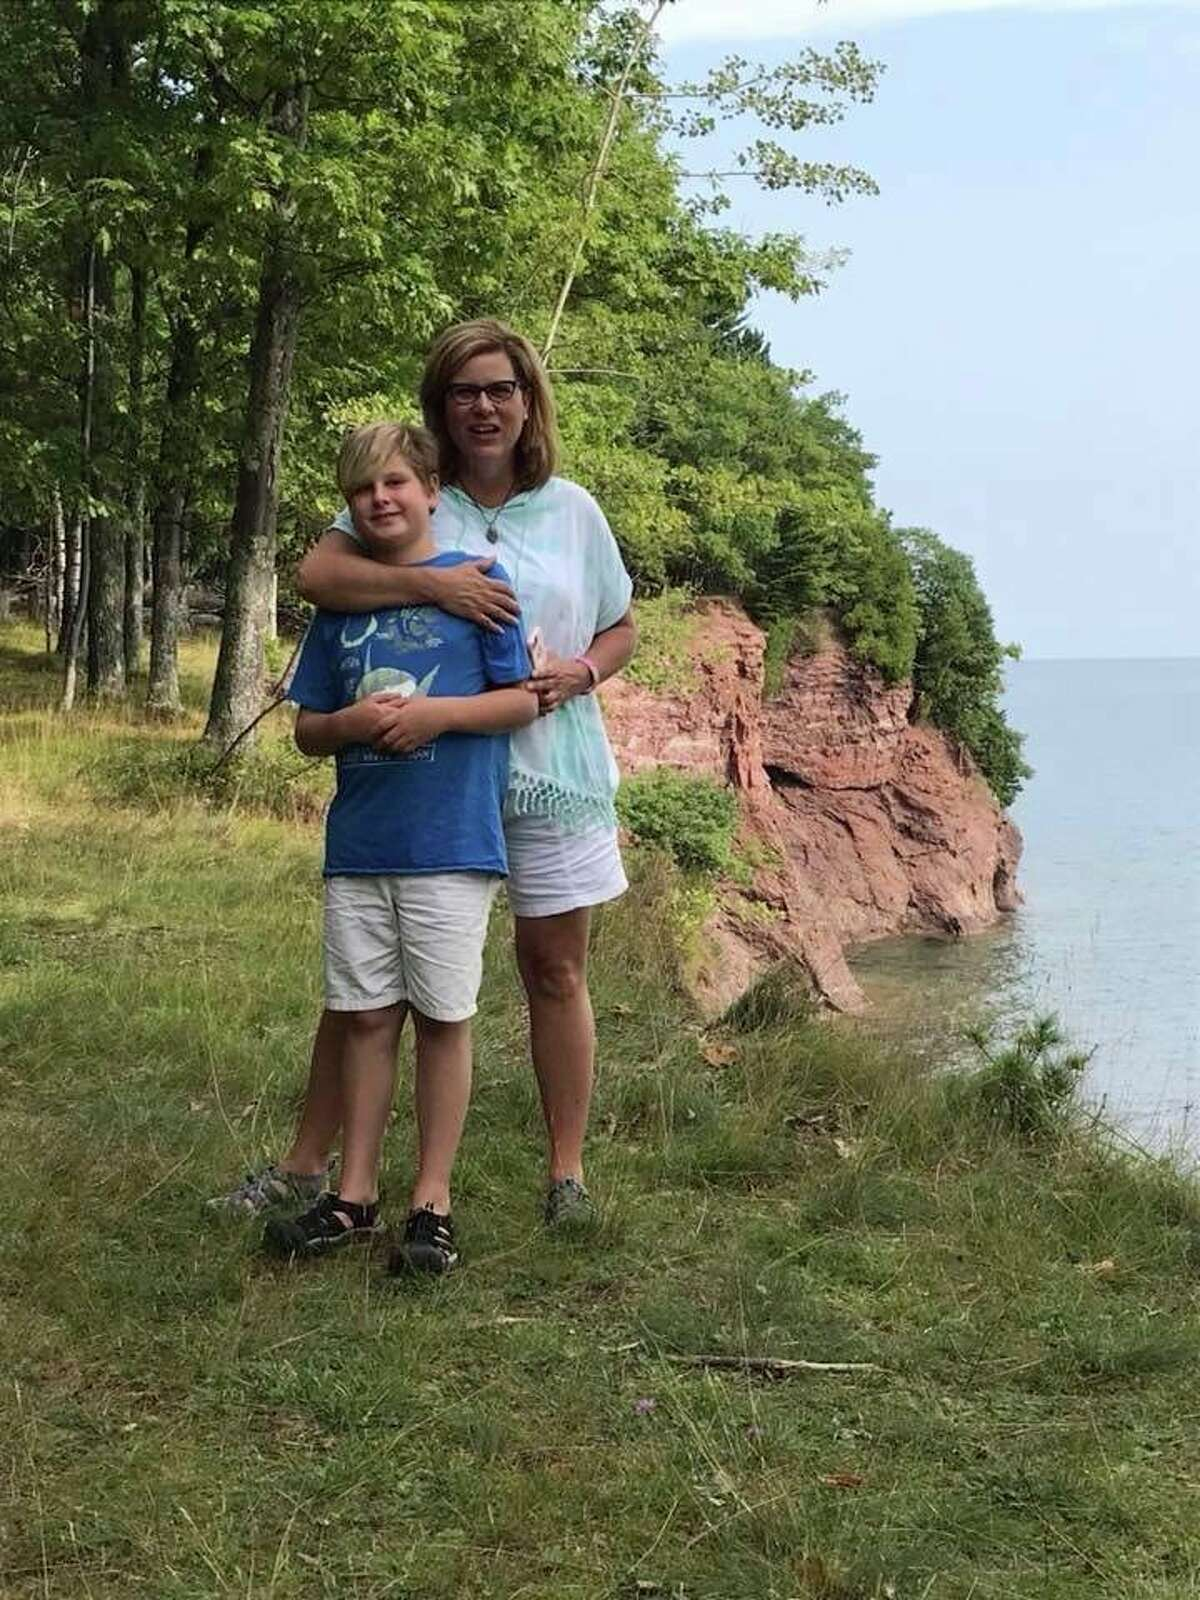 Melissa Leggieri wants nothing more than to beat the coronavirus and get back to spending time with her 12-year-old sonBeckett. (Courtesy Photo)